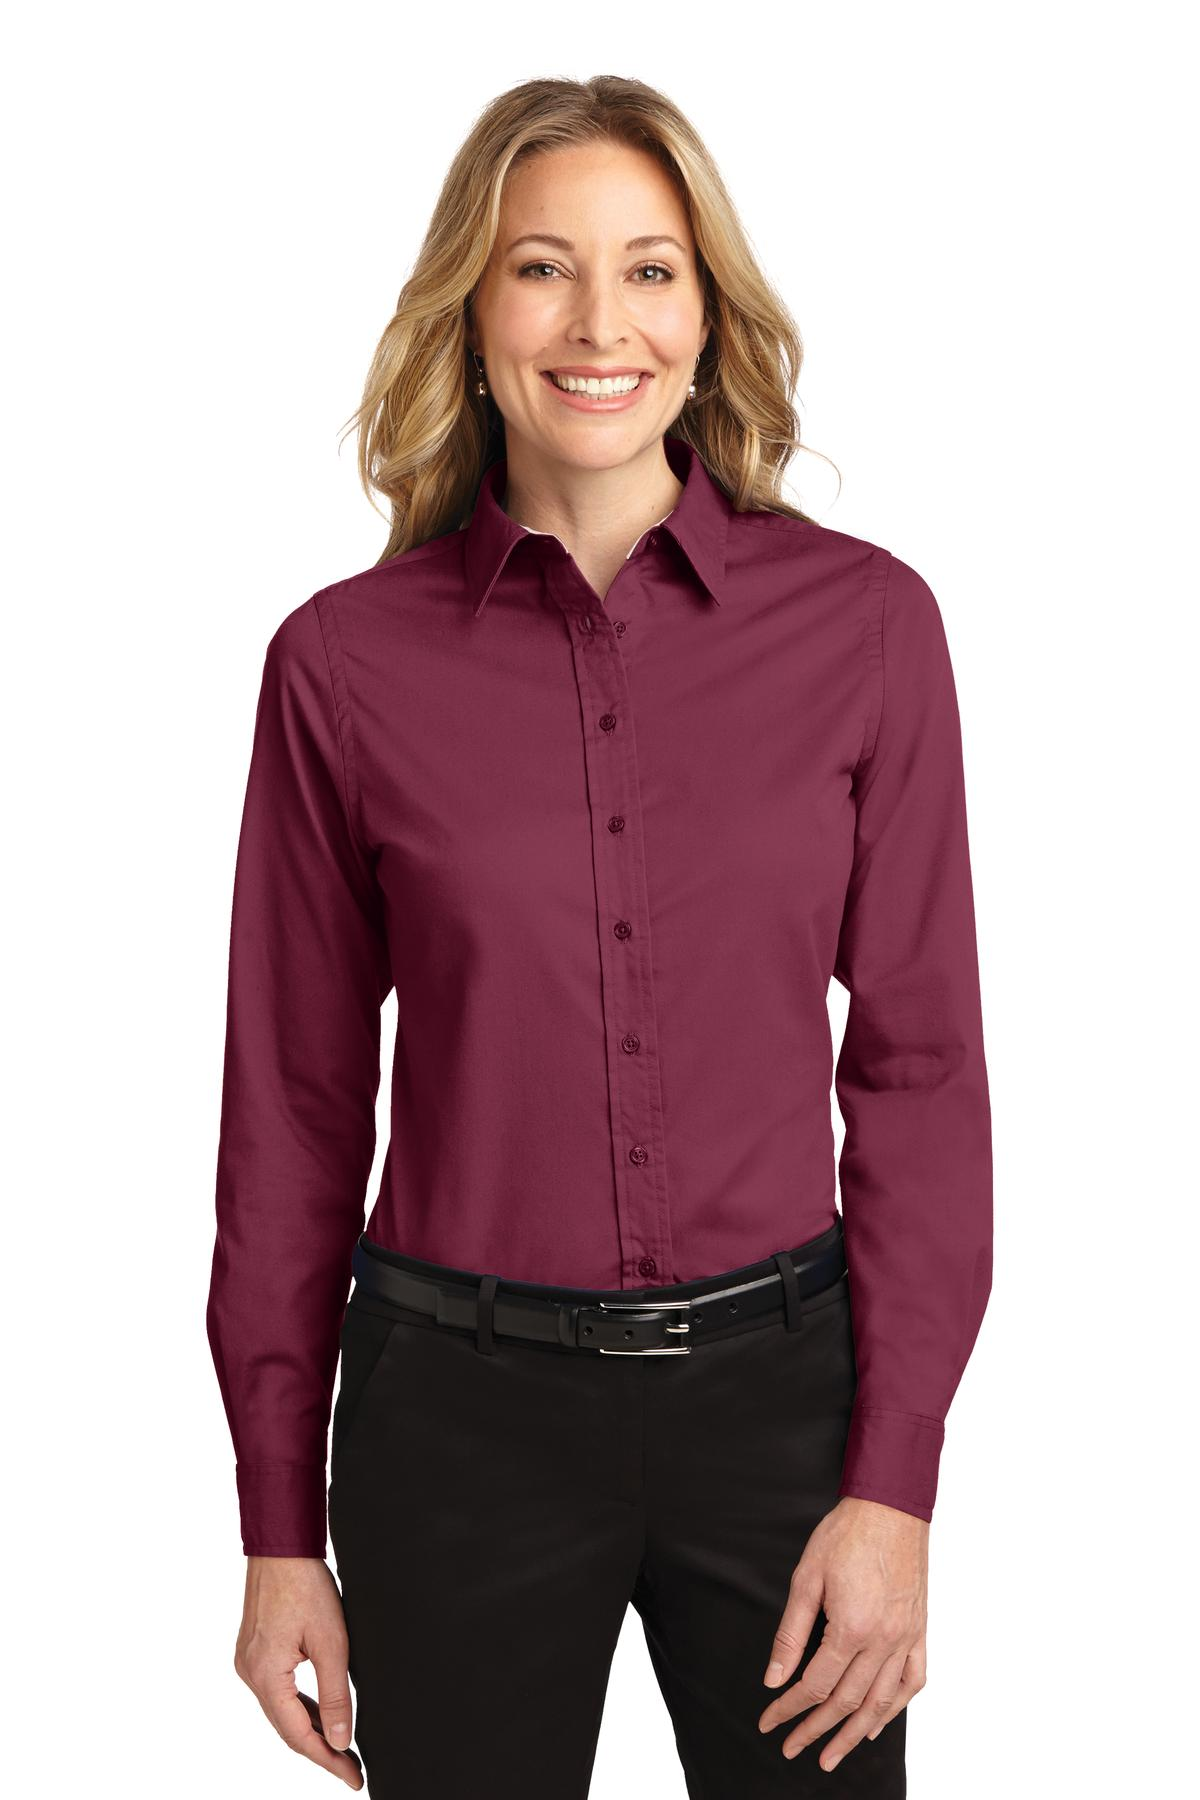 Burgundy / Light Stone Port Authority Ladies Long Sleeve Easy Care Shirt.